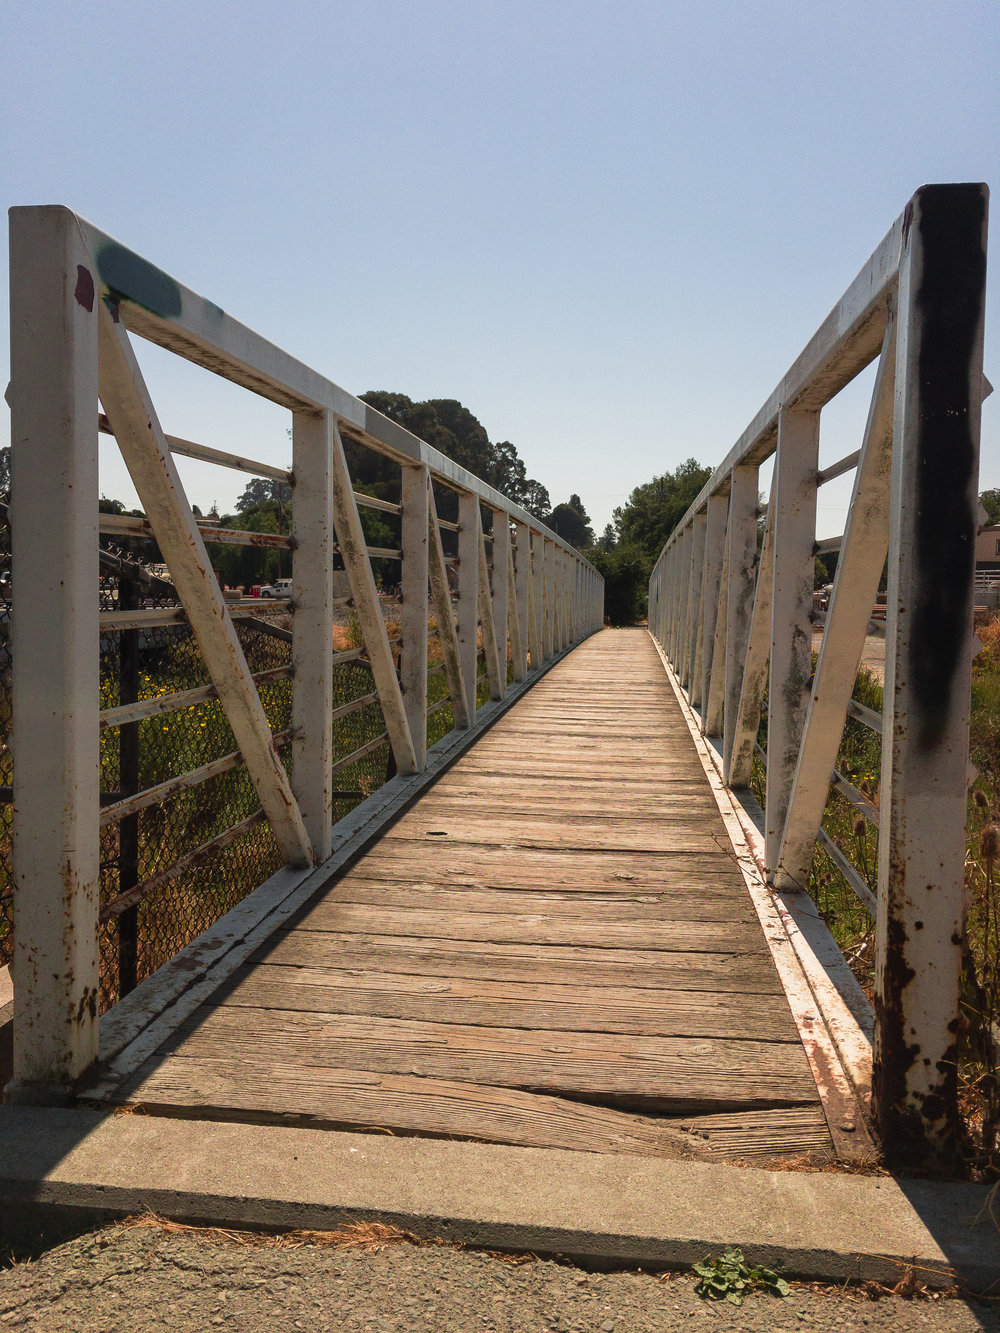 There is a bridge that connects the trail to the Pinole shoreline's water edge. The bridge always gives me the creeps and creaks so much that you can't help but worry if it will break.